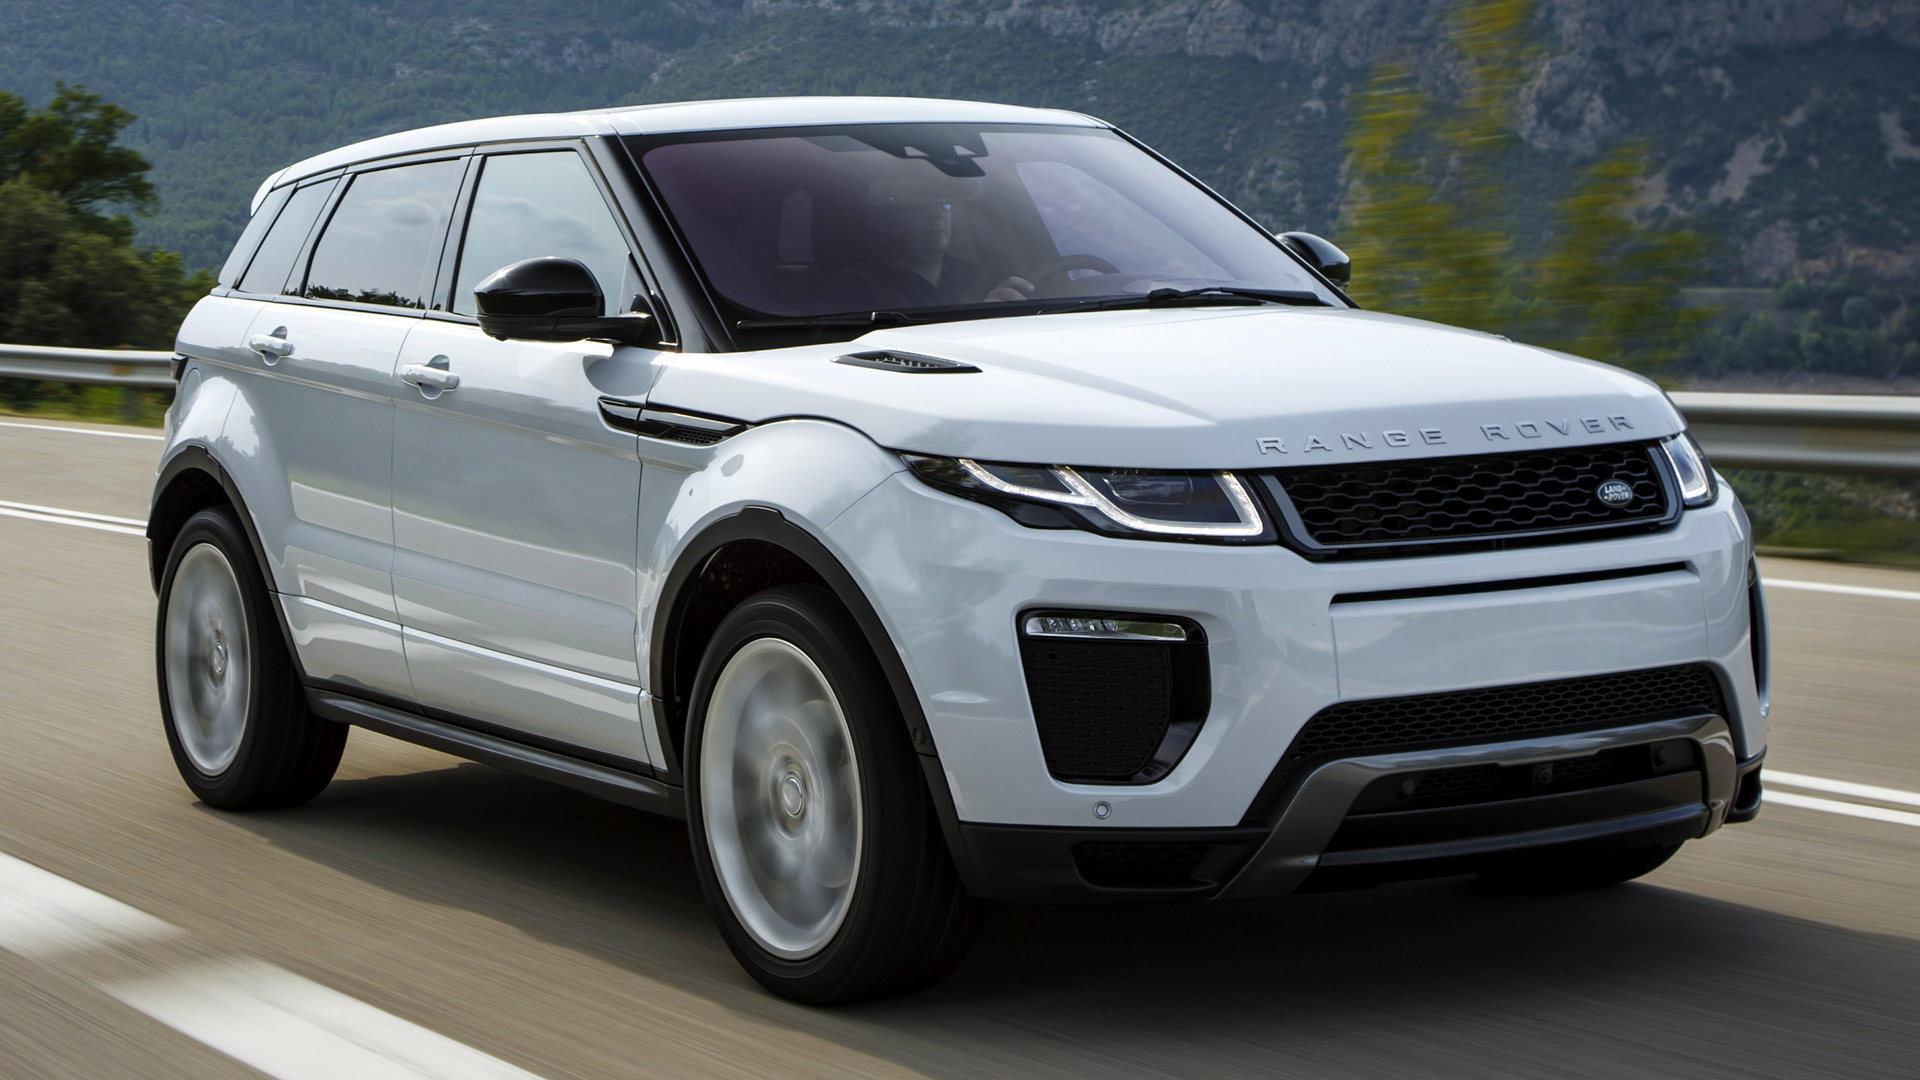 range rover evoque hse dynamic 2015 wallpapers and hd images car pixel. Black Bedroom Furniture Sets. Home Design Ideas